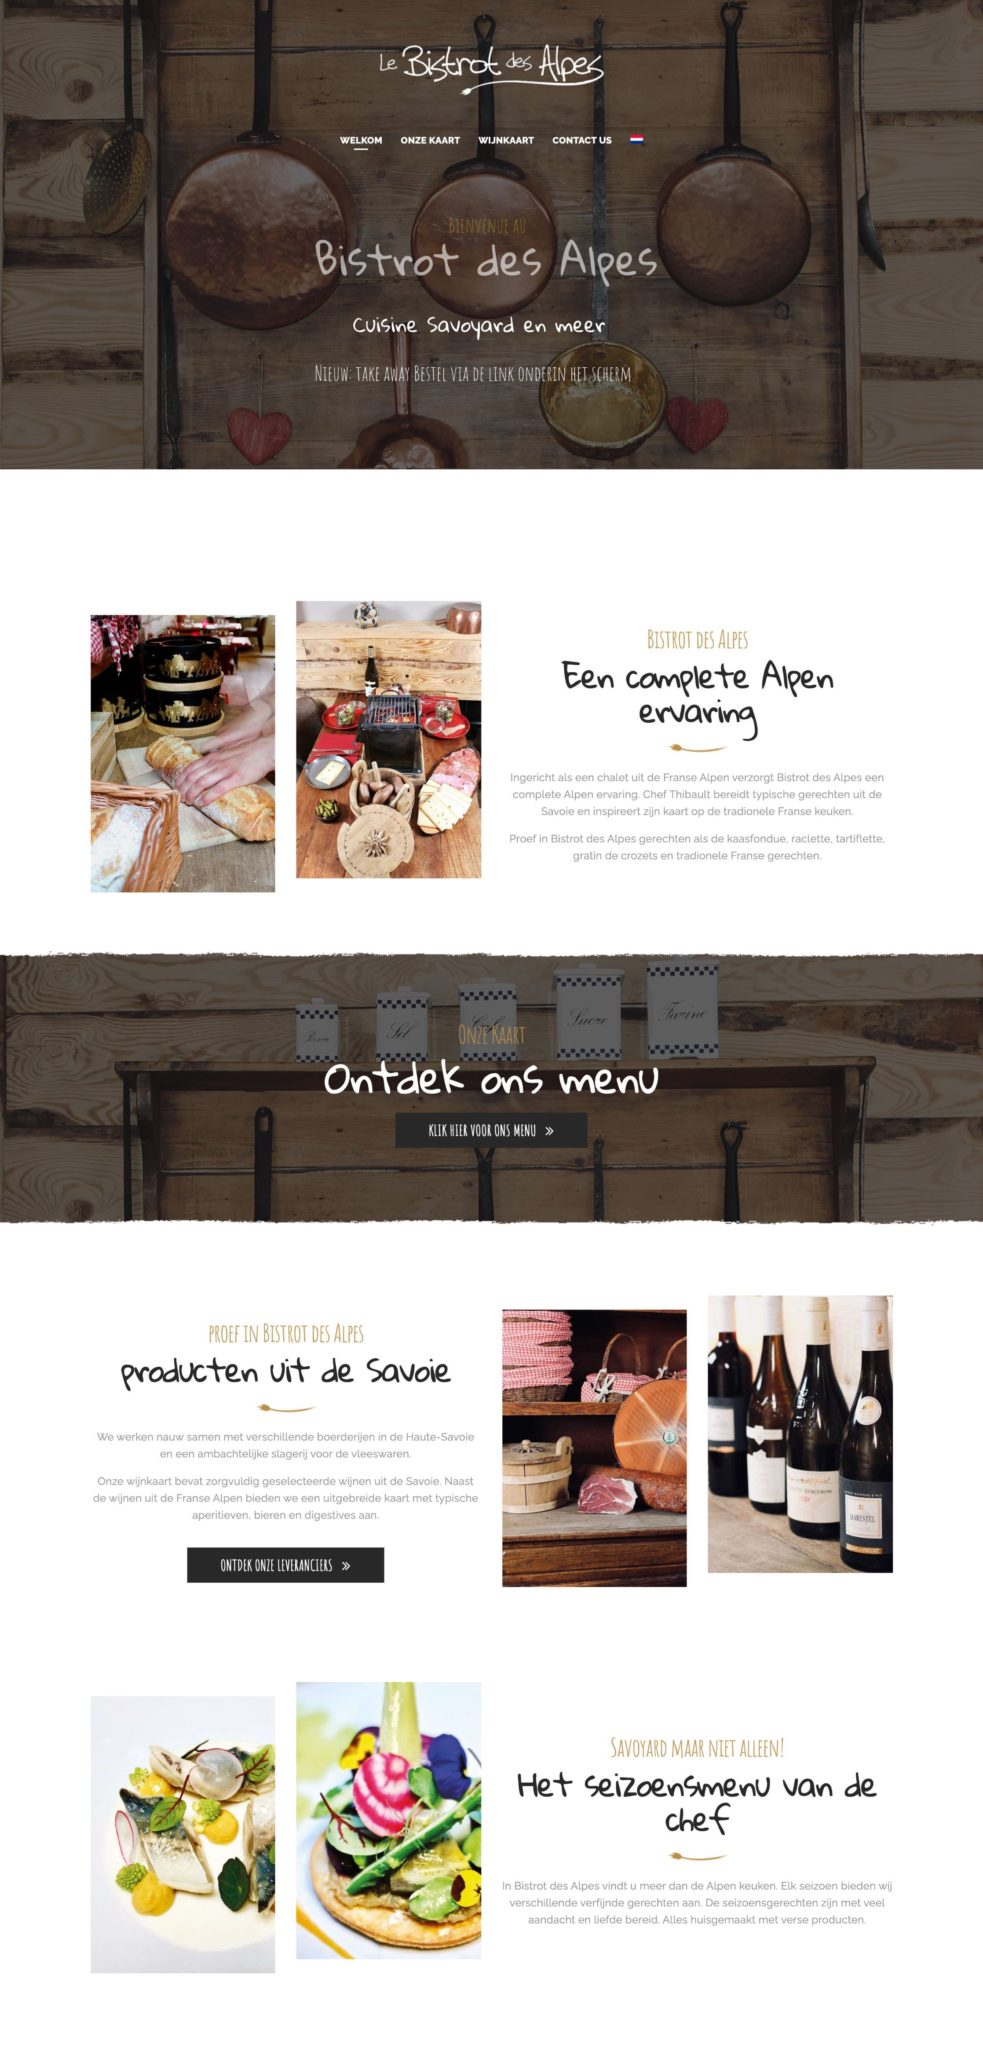 Bistrot des Alpes Restaurant Website Design Idea 2020